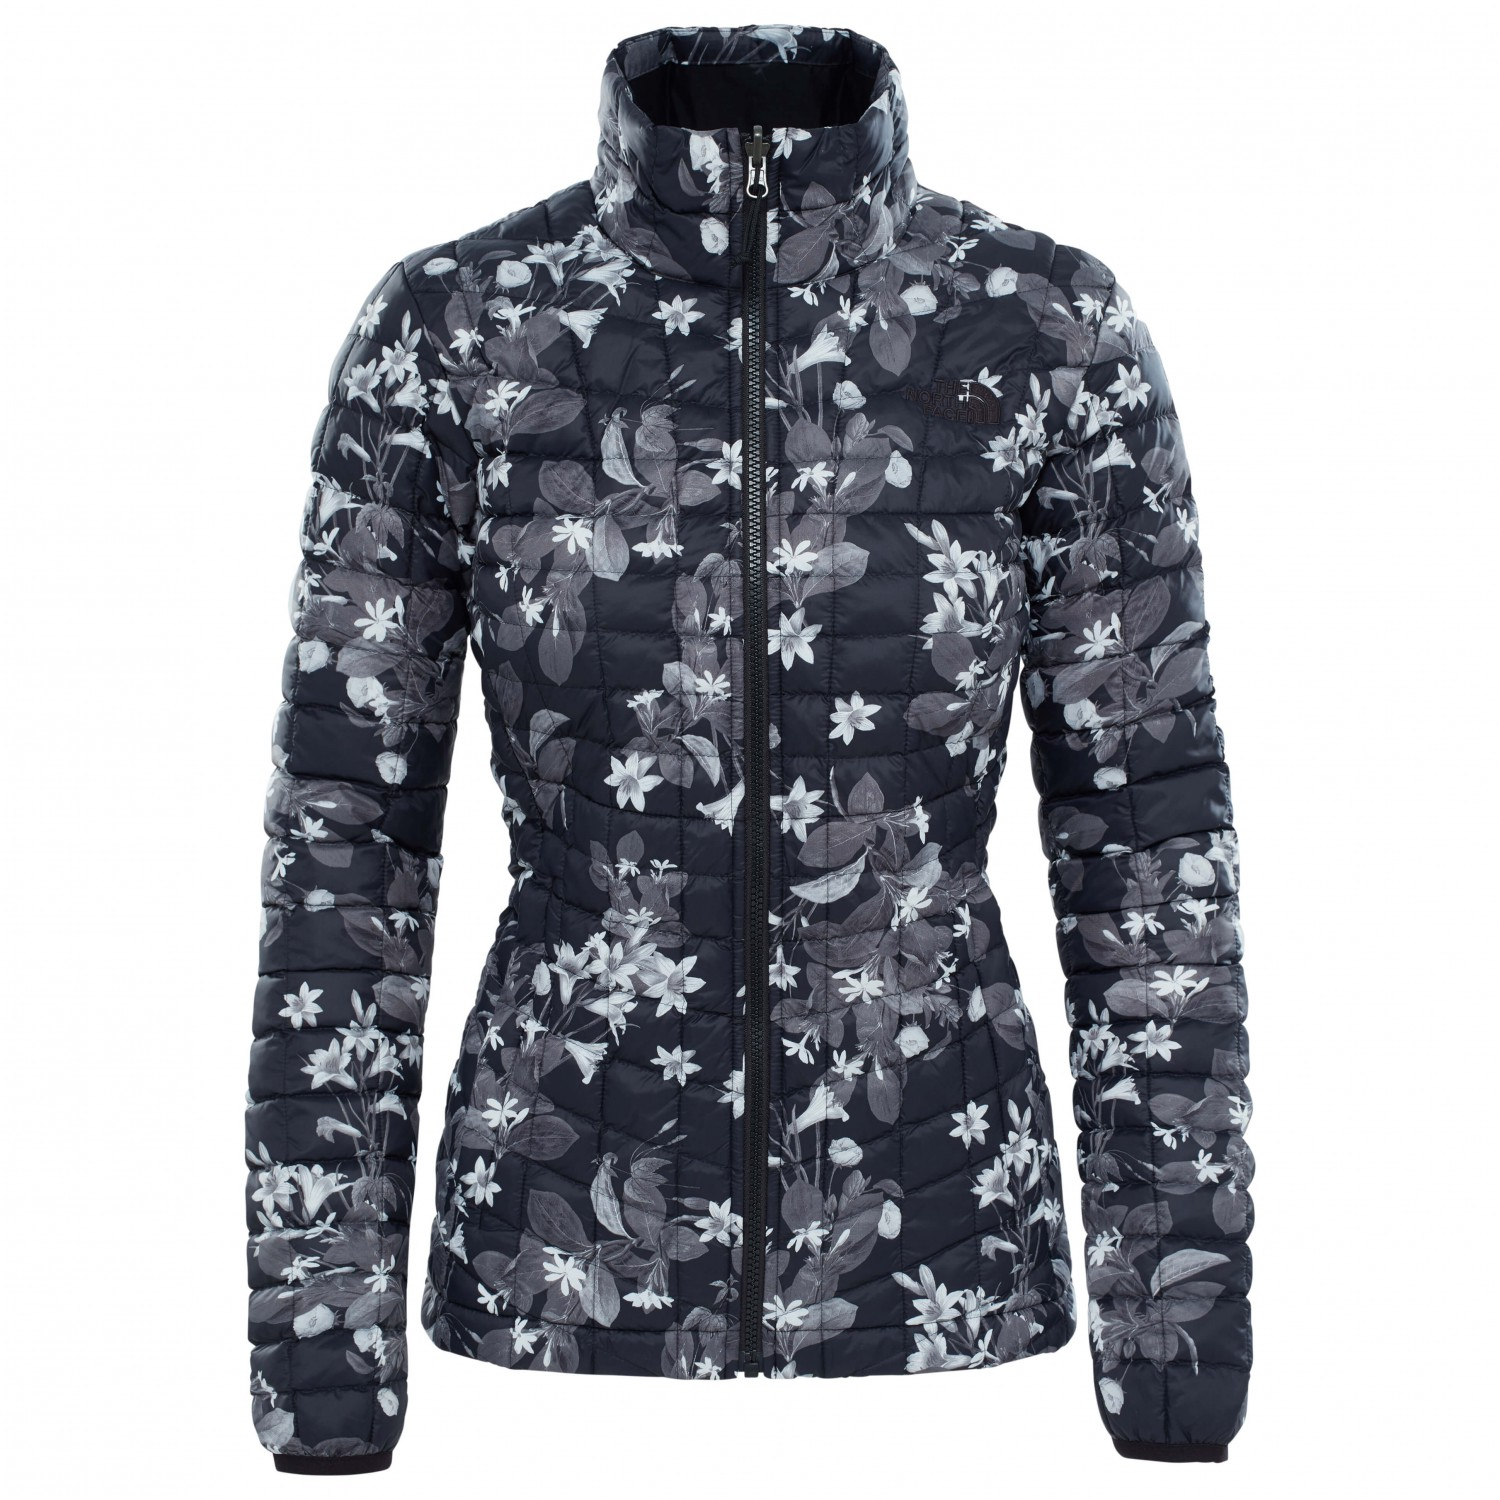 ff766b5aff The North Face - Women's Thermoball Triclimate Jacket - Veste doublée ...